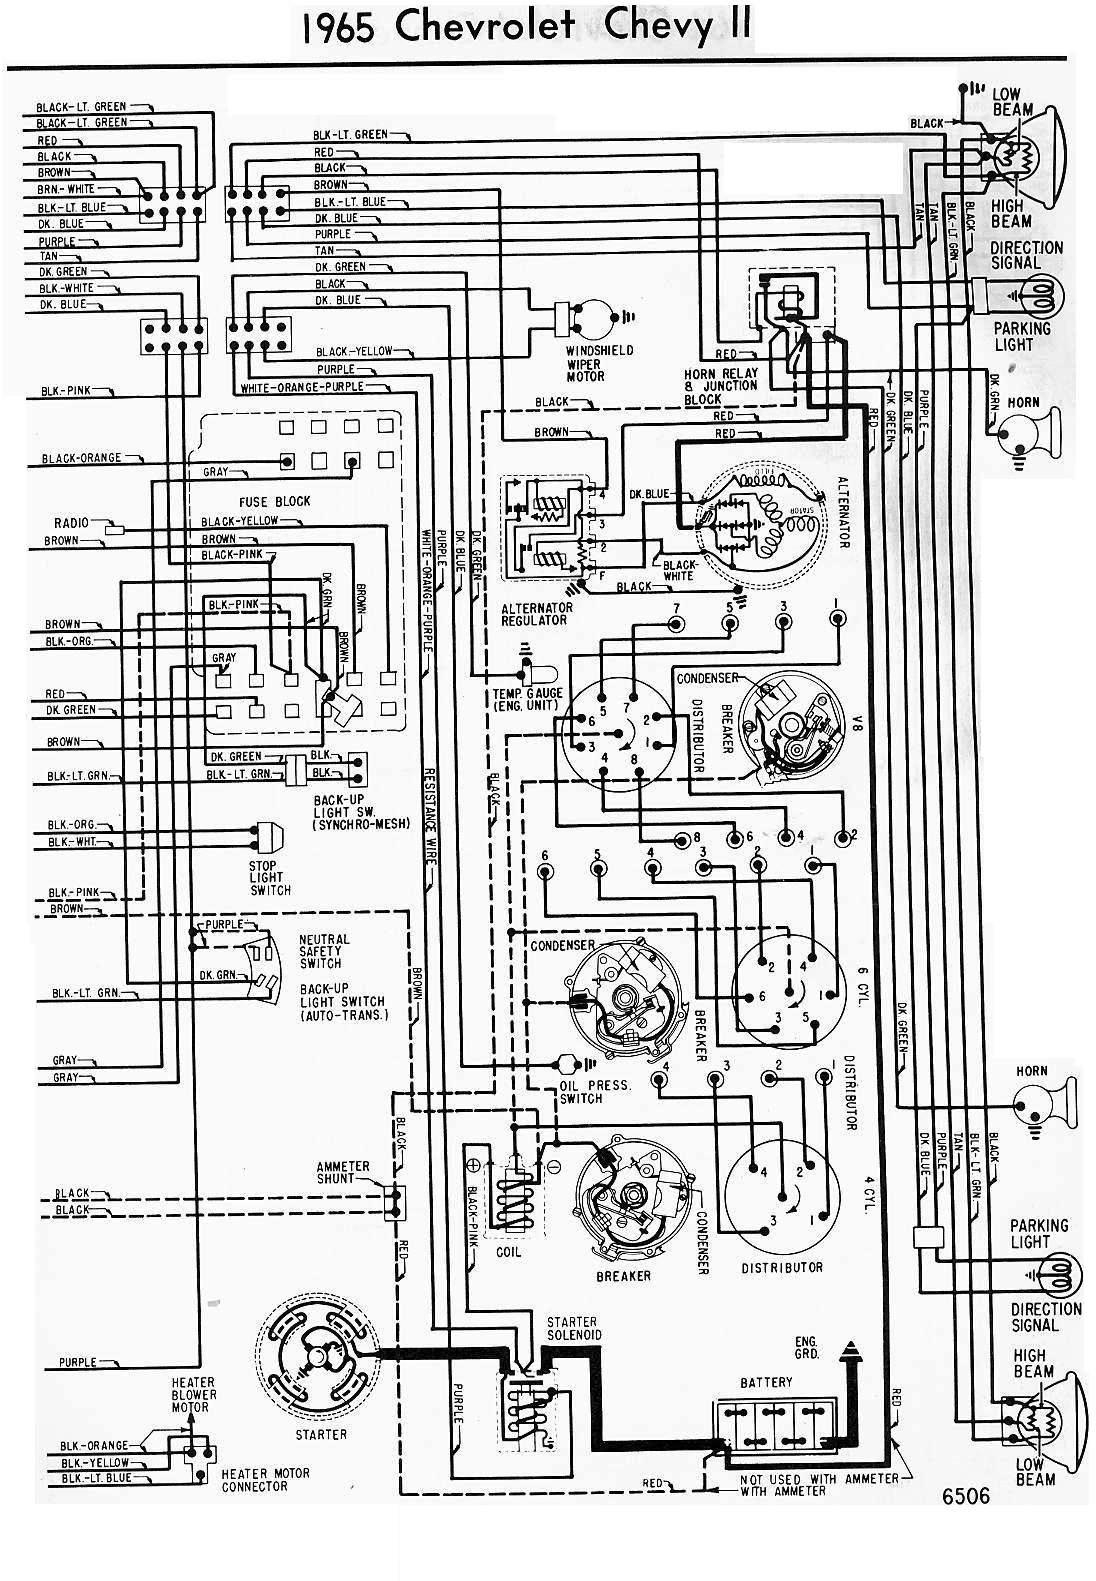 1965 chevrolet chevy ii wiring diagram all about wiring diagrams. Black Bedroom Furniture Sets. Home Design Ideas